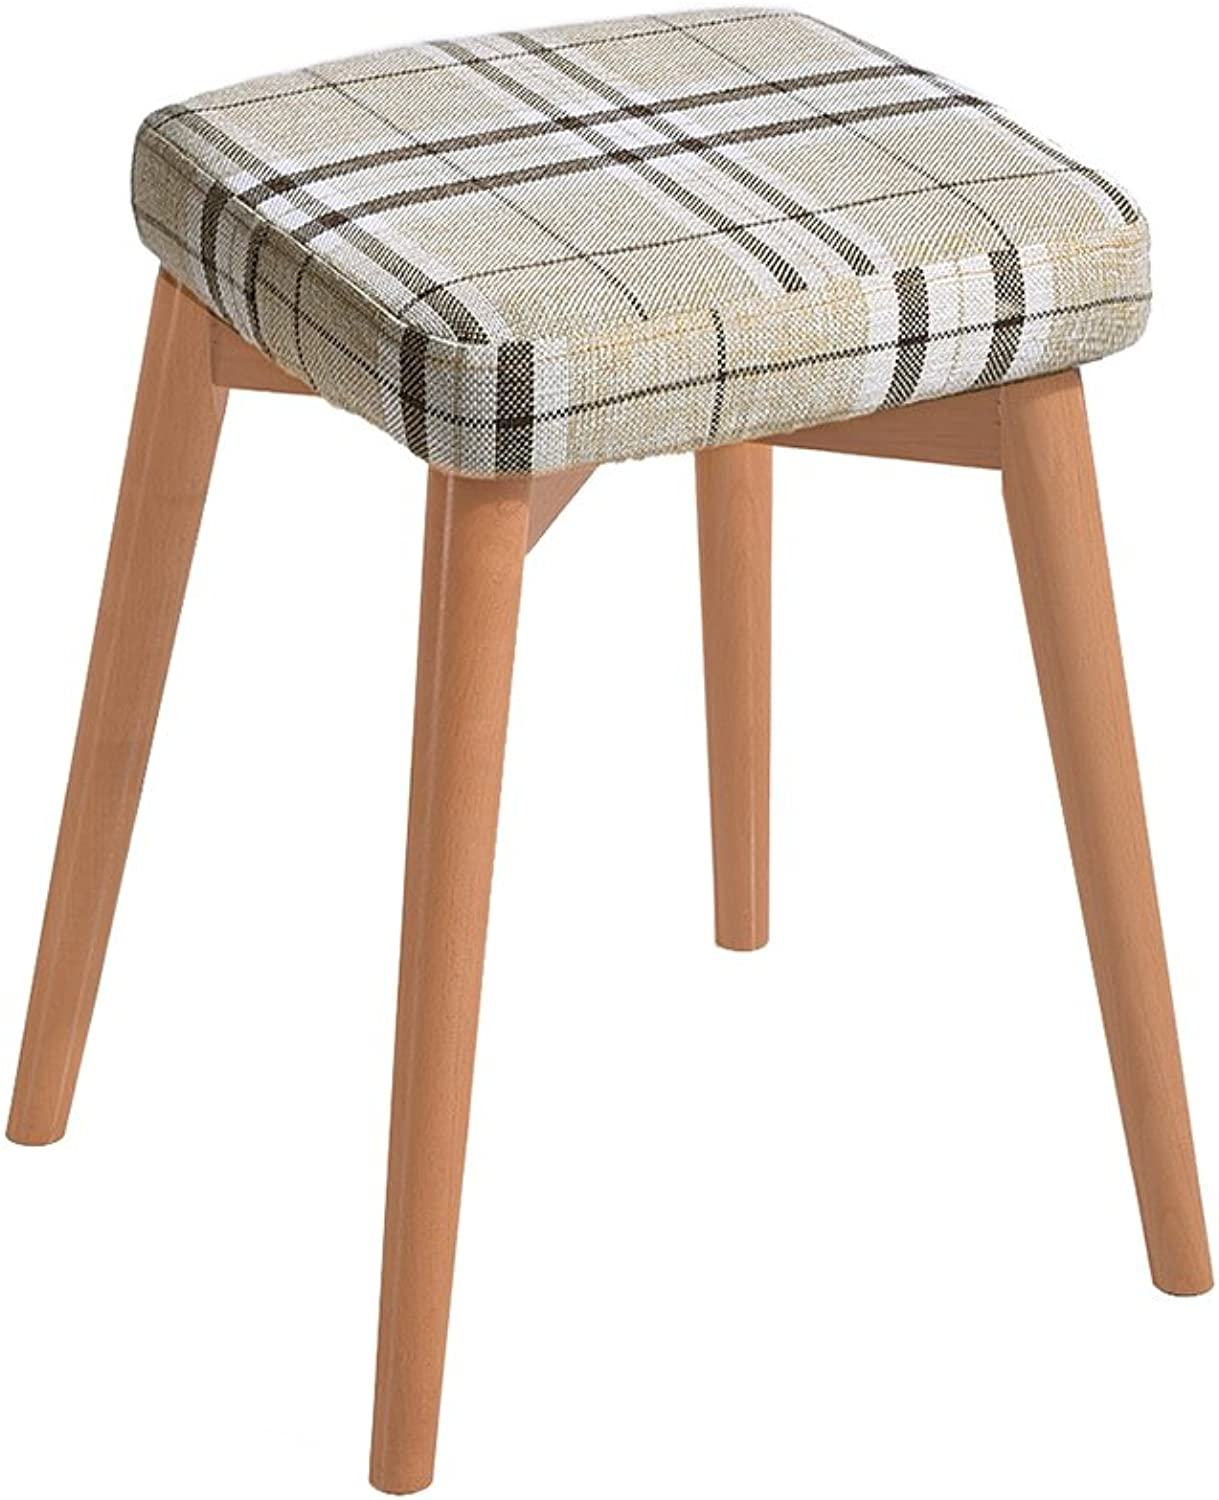 WENJUN Square Wooden Wood Support Upholstered Footstool Pouffe Chair Stool Fabric Cover 4 Legand Removable Linen Covers (color   3)